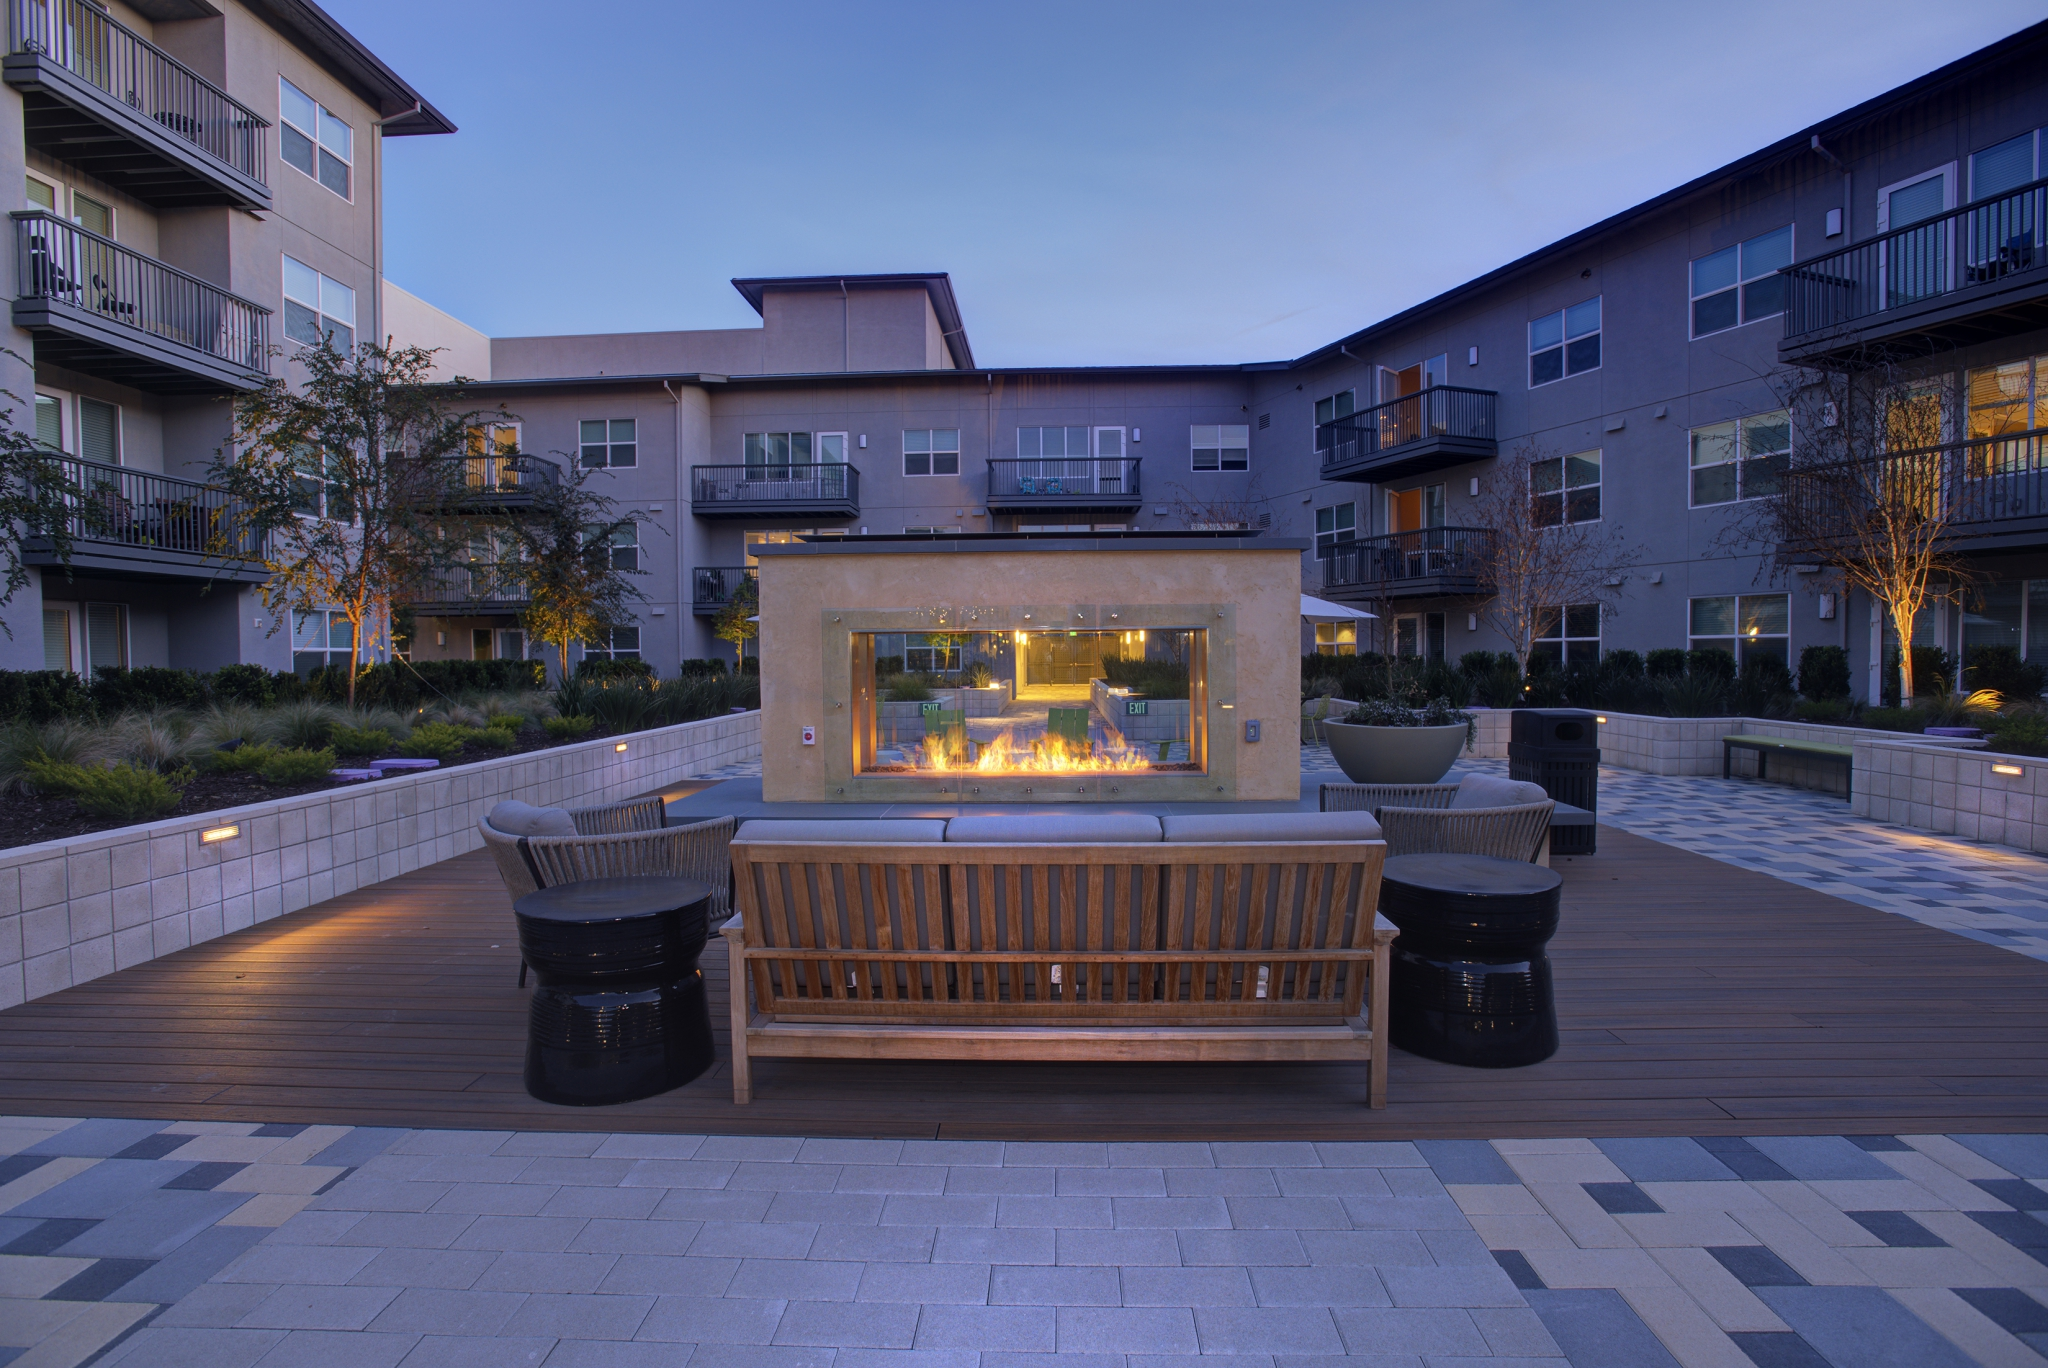 Exterior of courtyard with couches and fireplace surrounded by 3- and 4-story apartment building